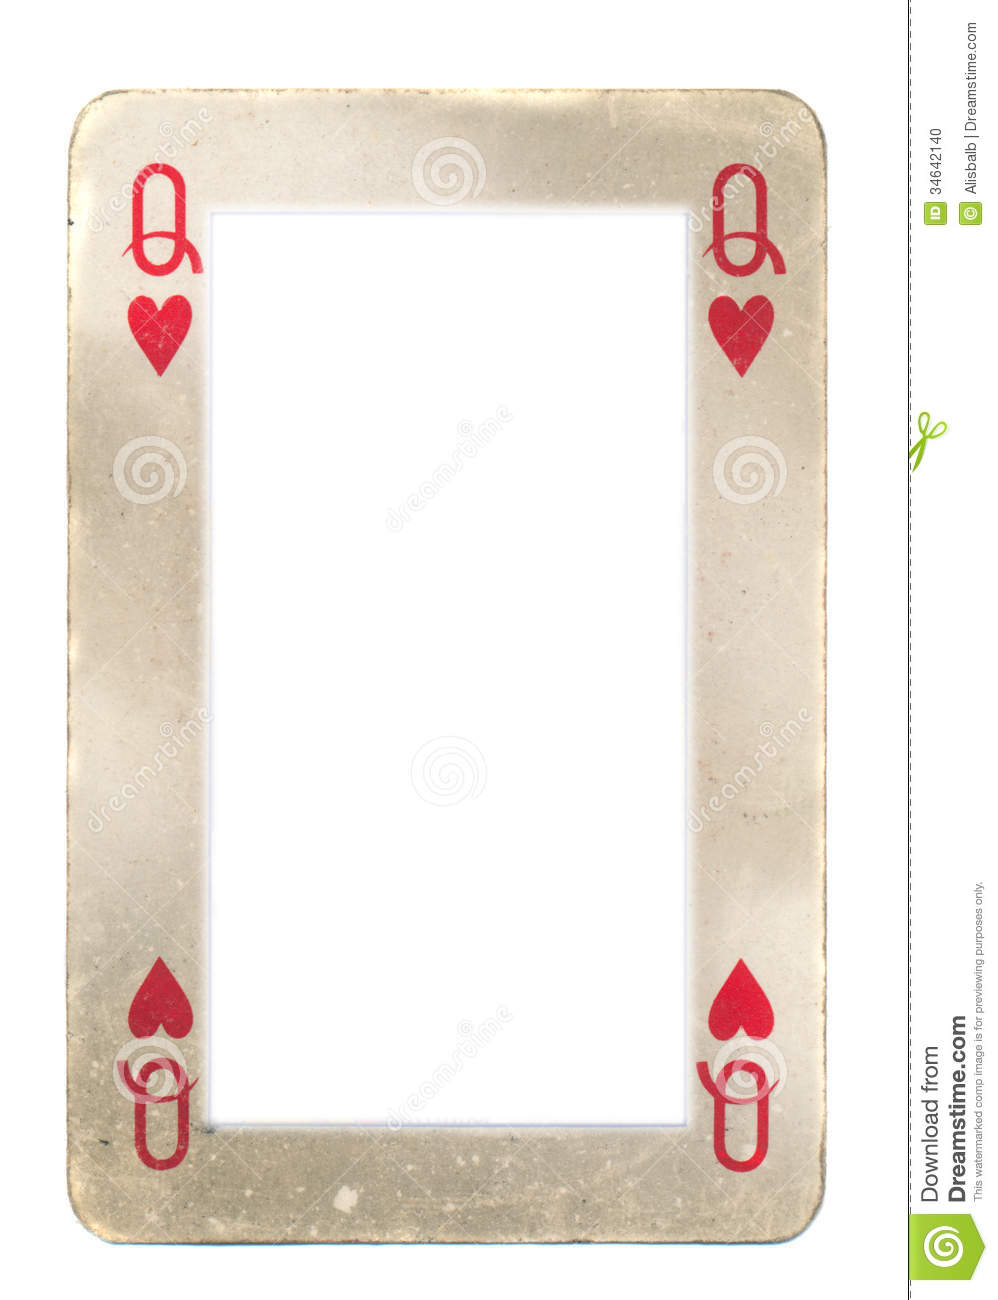 paper frame from queen of hearts playing card stock photo